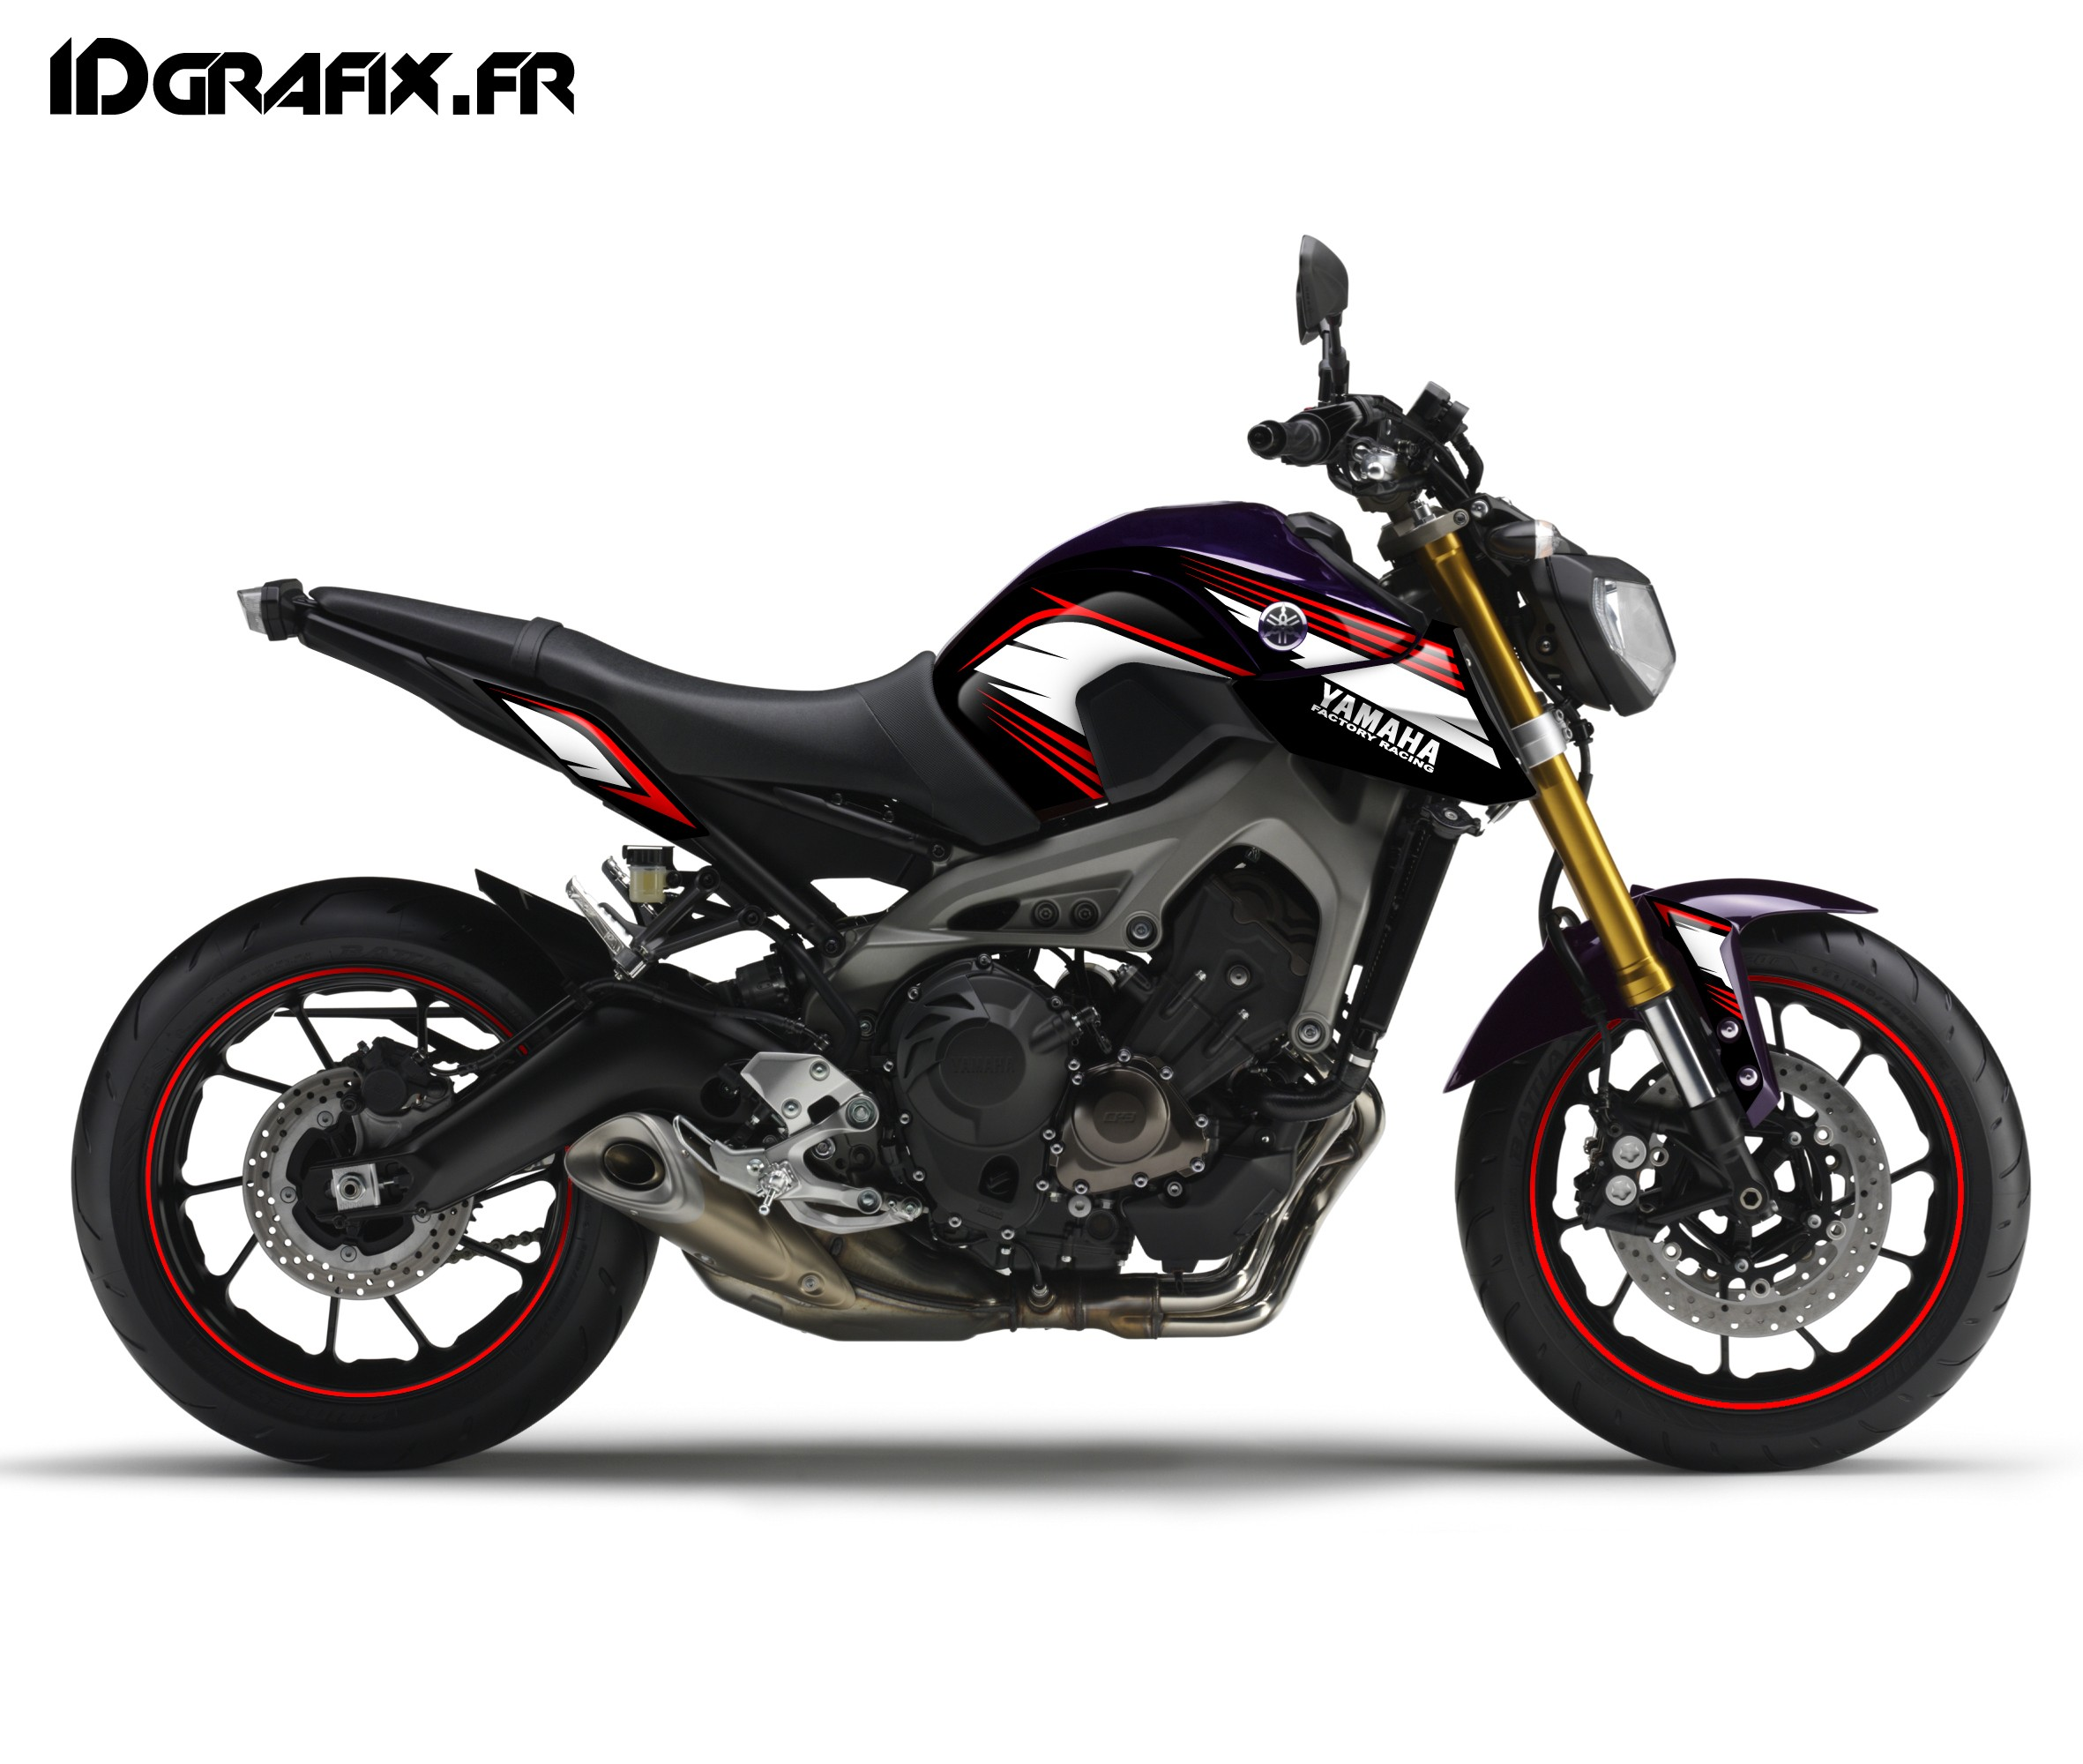 kit decoration racing red idgrafix yamaha mt 09 idgrafix